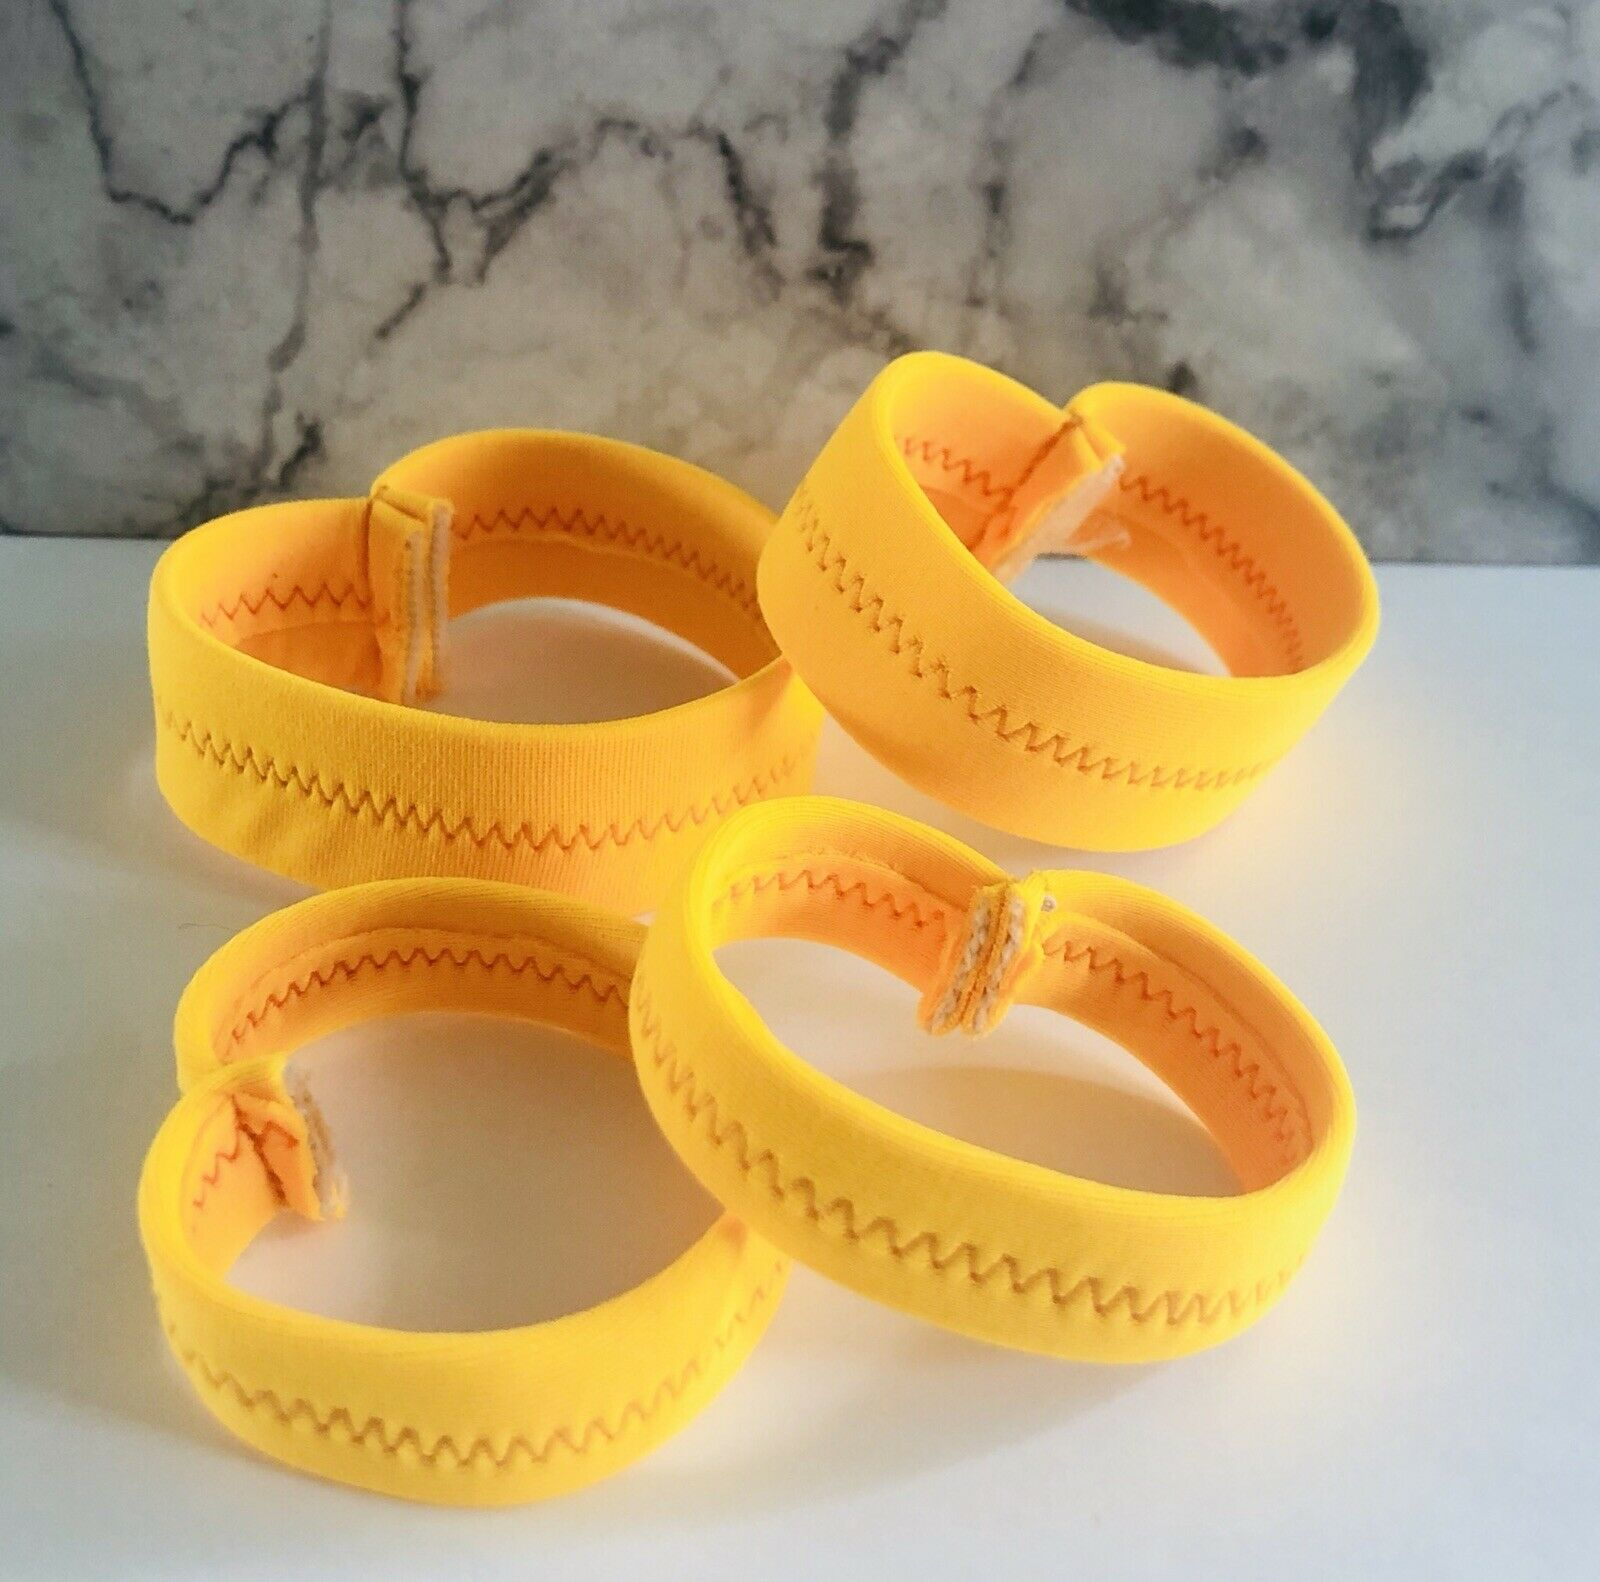 Sunrise Yellow Ankle And Wrist Bands Age 6 - 8